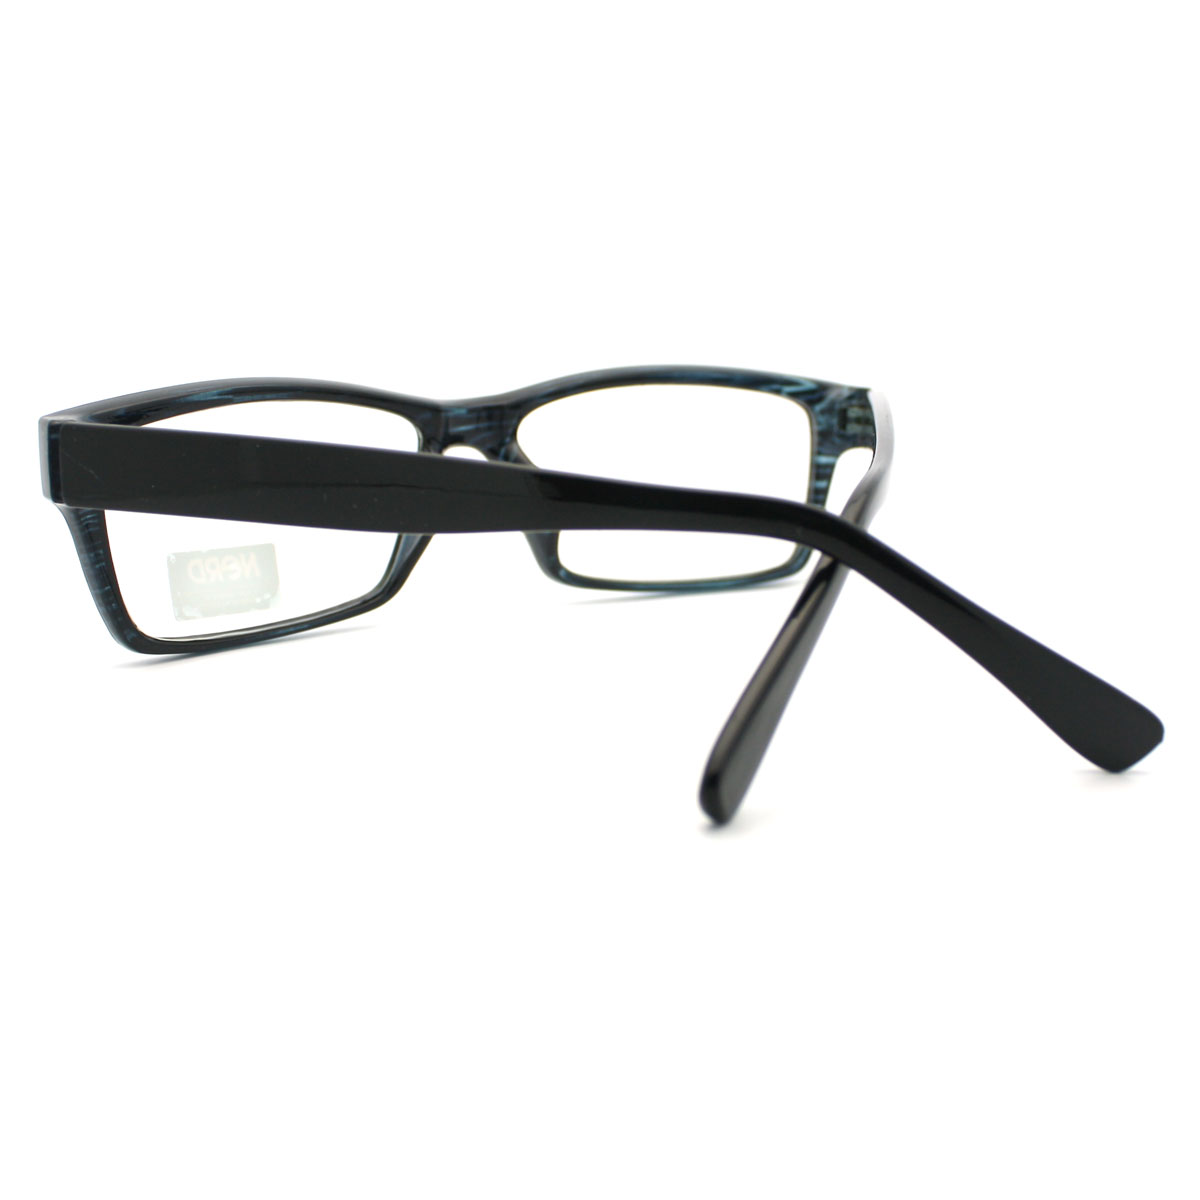 Glasses Frames Too Narrow : Unisex New Geeky Nerd Narrow Rectangular Clear Lens ...